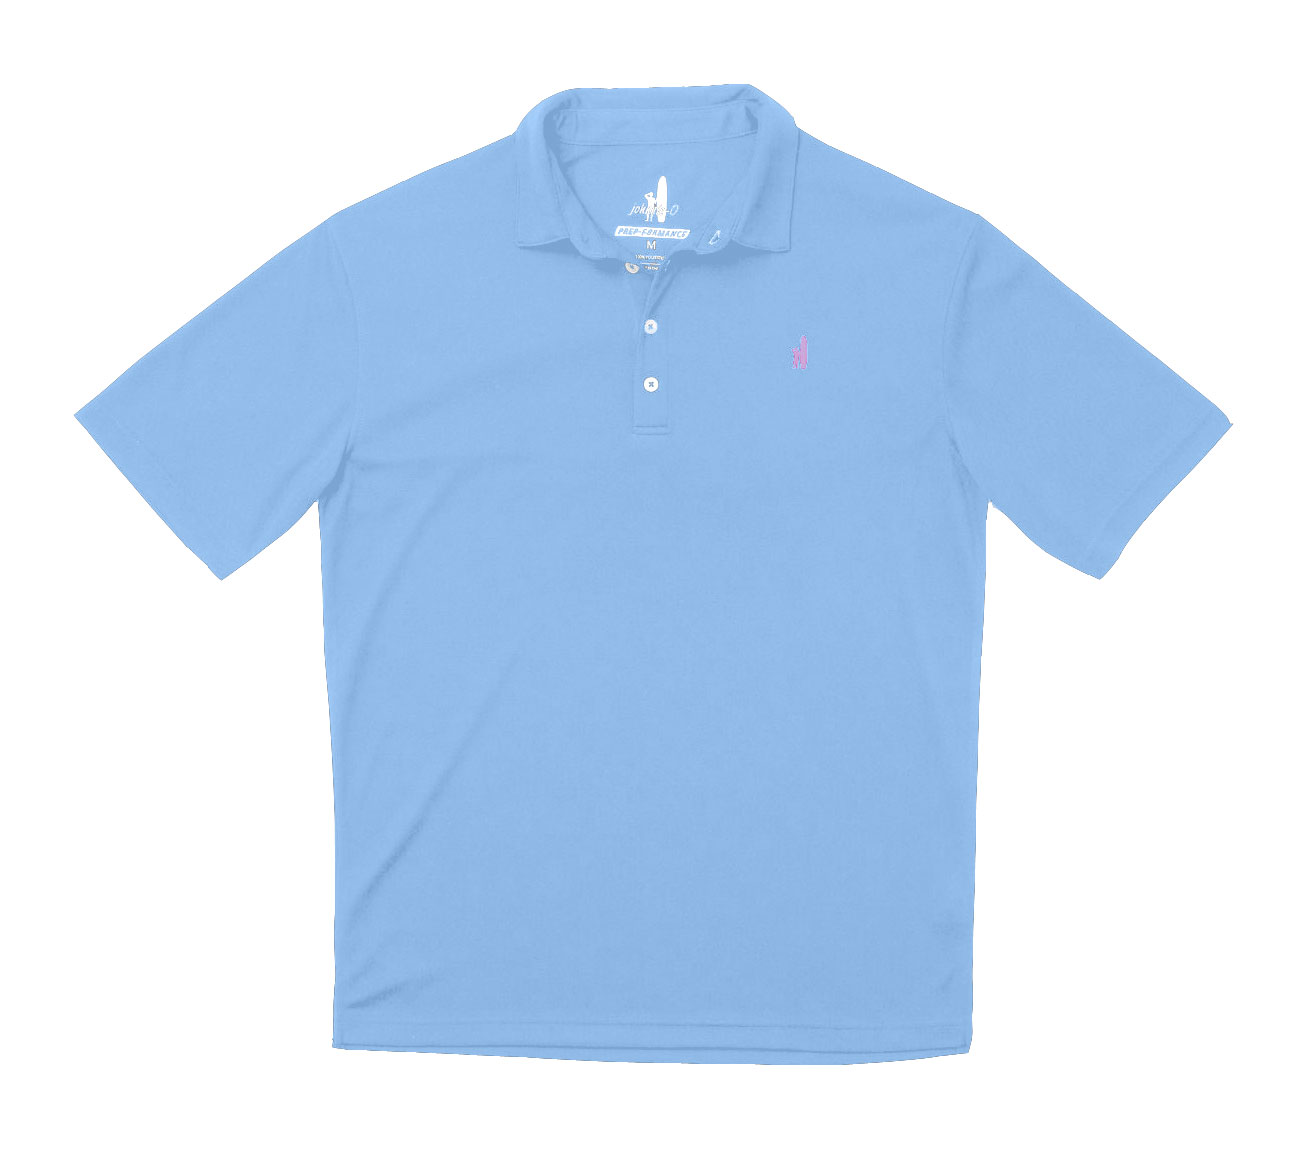 Johnnie-O Mens Fairway Moisture Wicking Polo